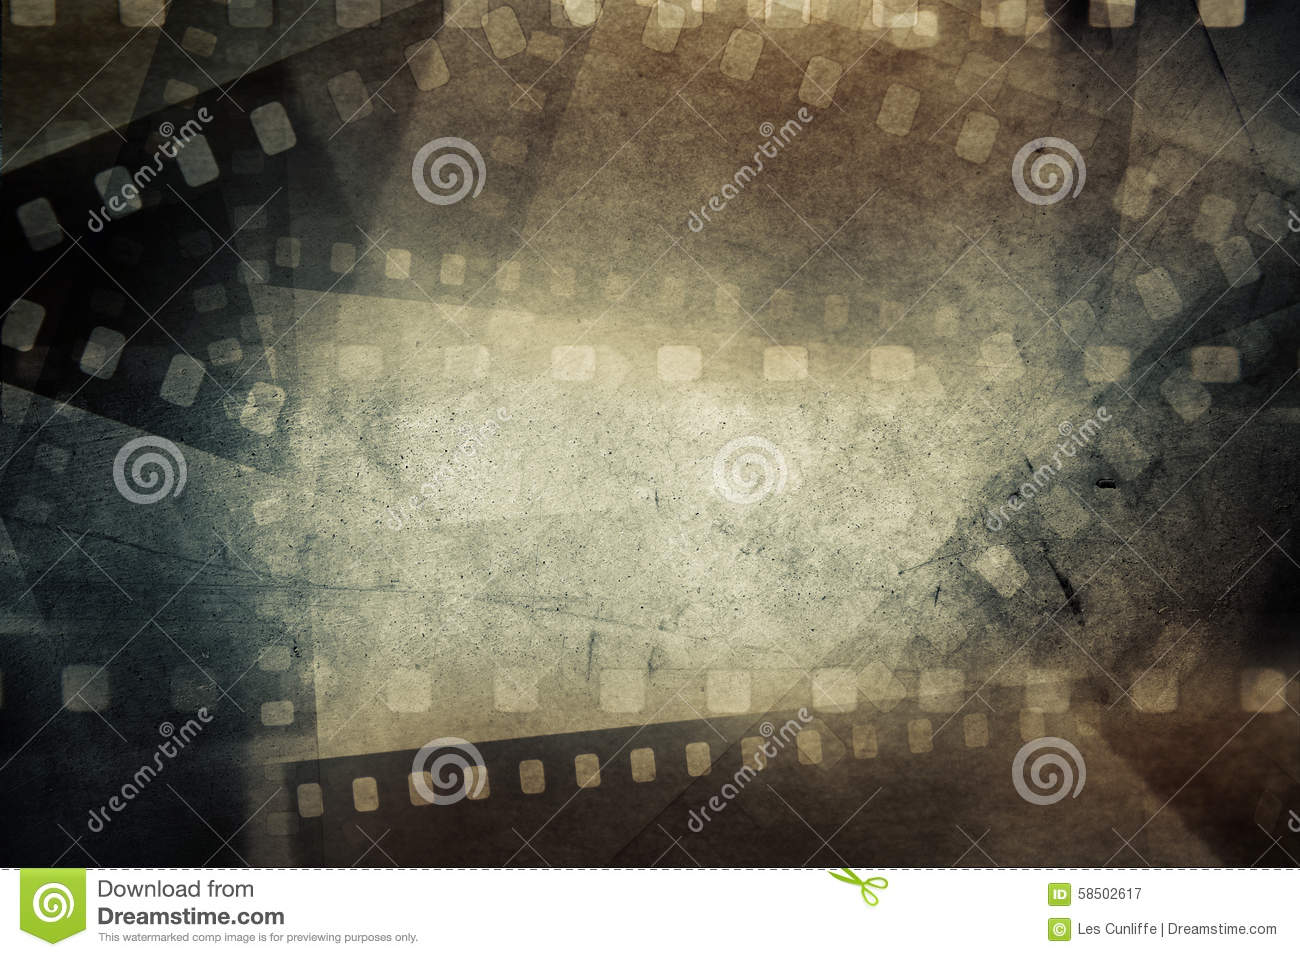 Film Frames Stock Photo - Image: 58502617